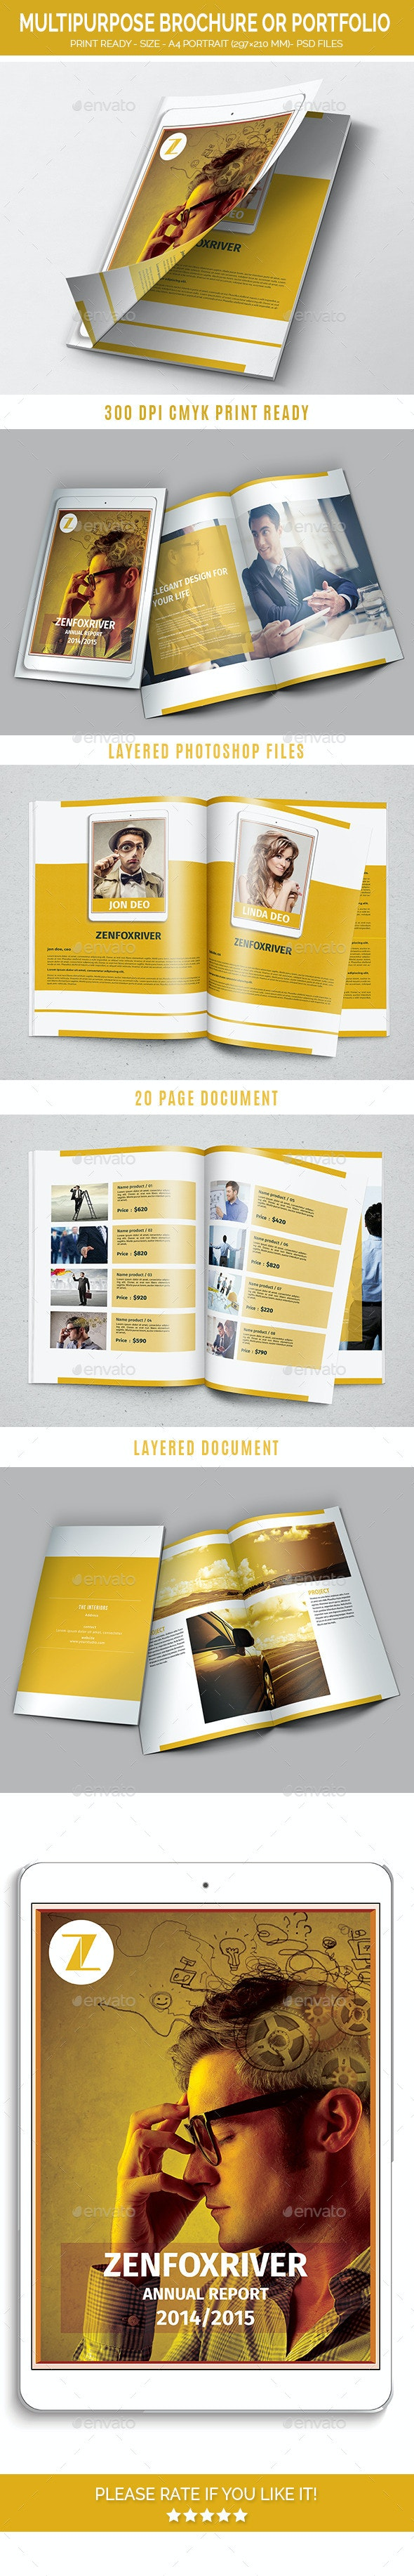 Multipurpose Brochure or Portfolio - Brochures Print Templates